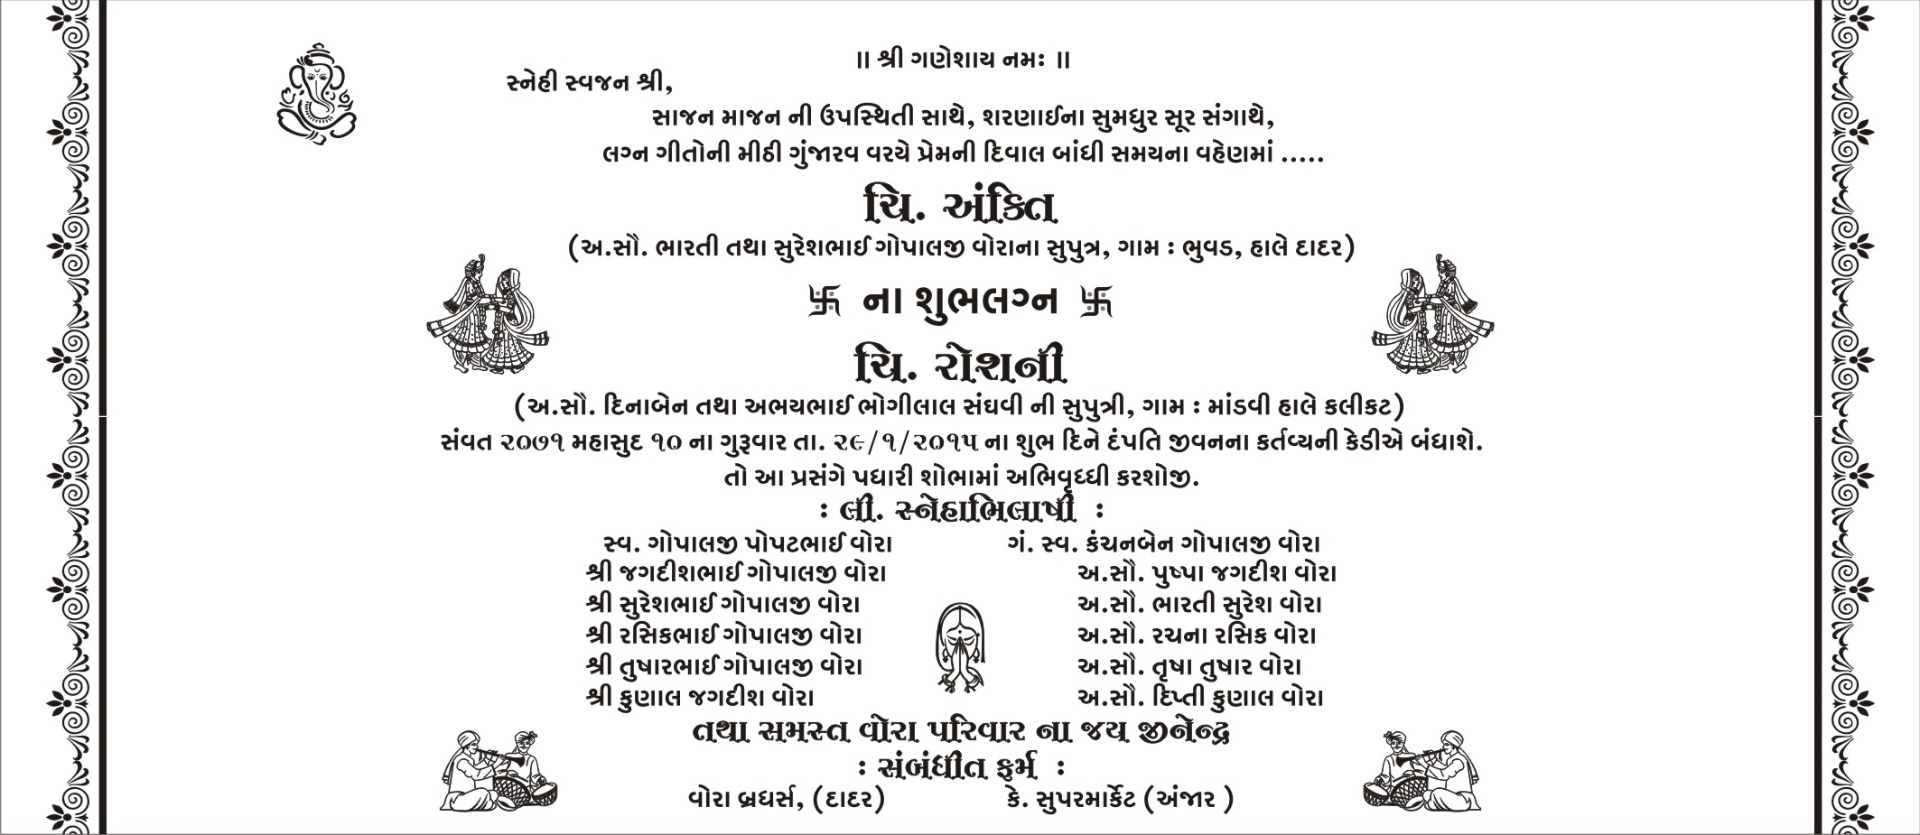 Gujarati Card Sample Wordings - Jimit Card